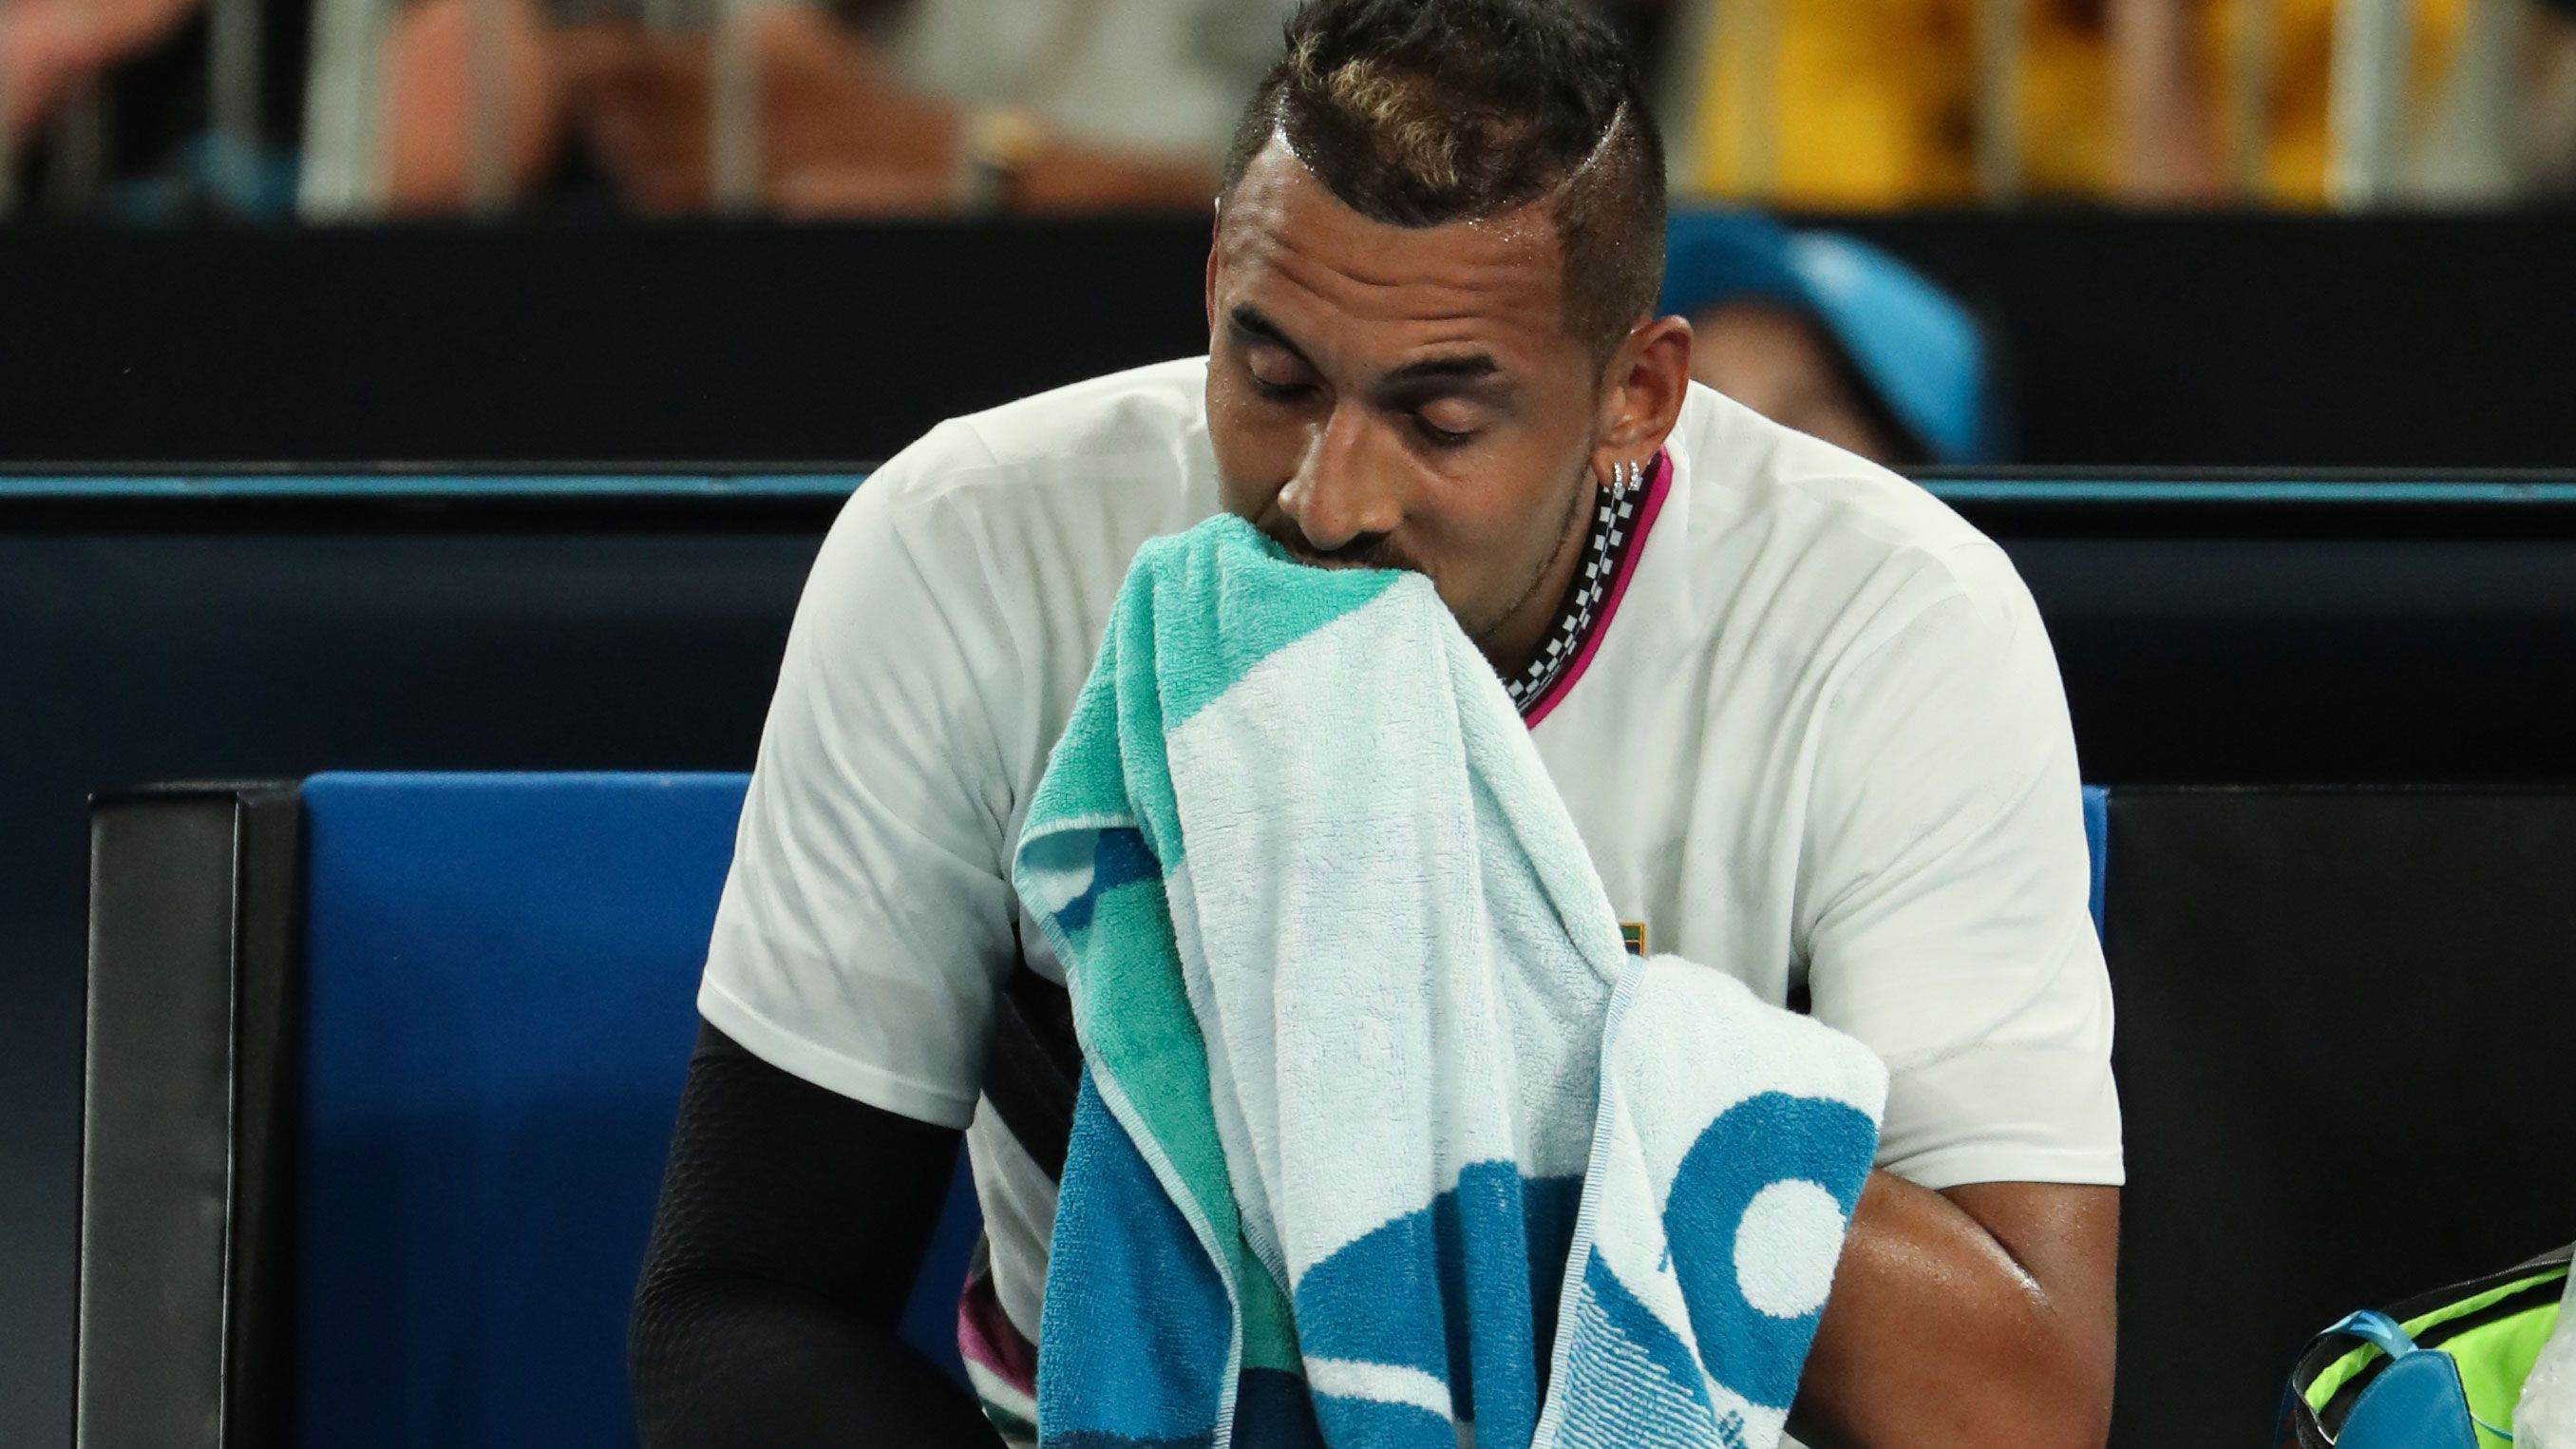 Nick Kyrgios proves again that showtime comes before results in Australian Open loss